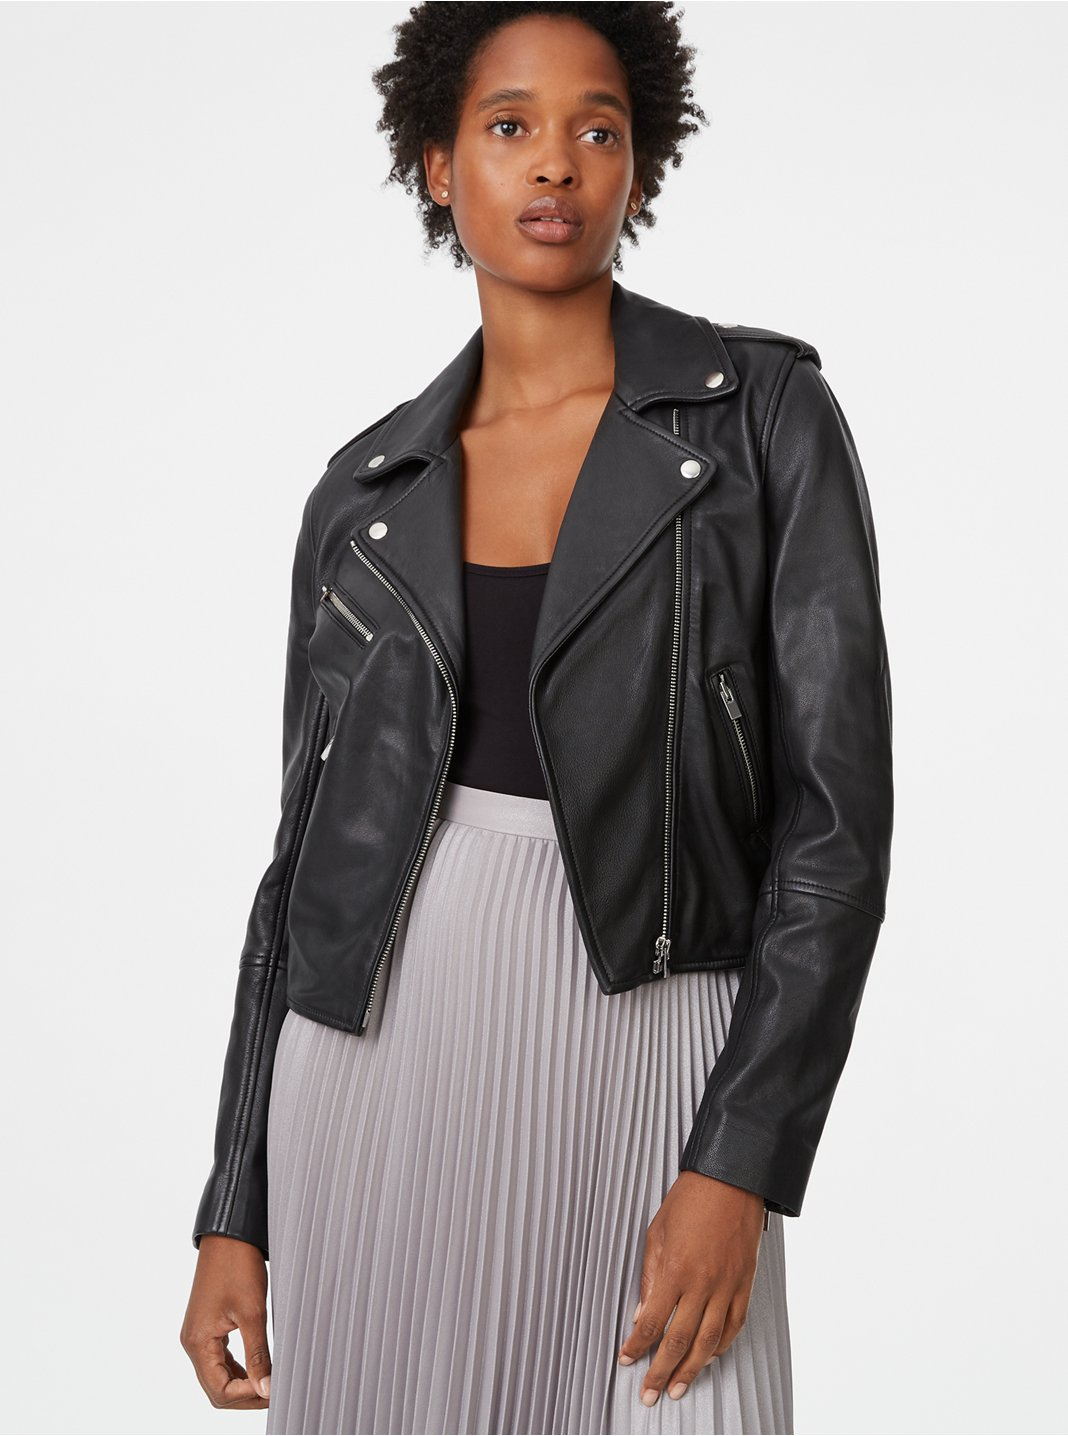 Gracella Leather Jacket